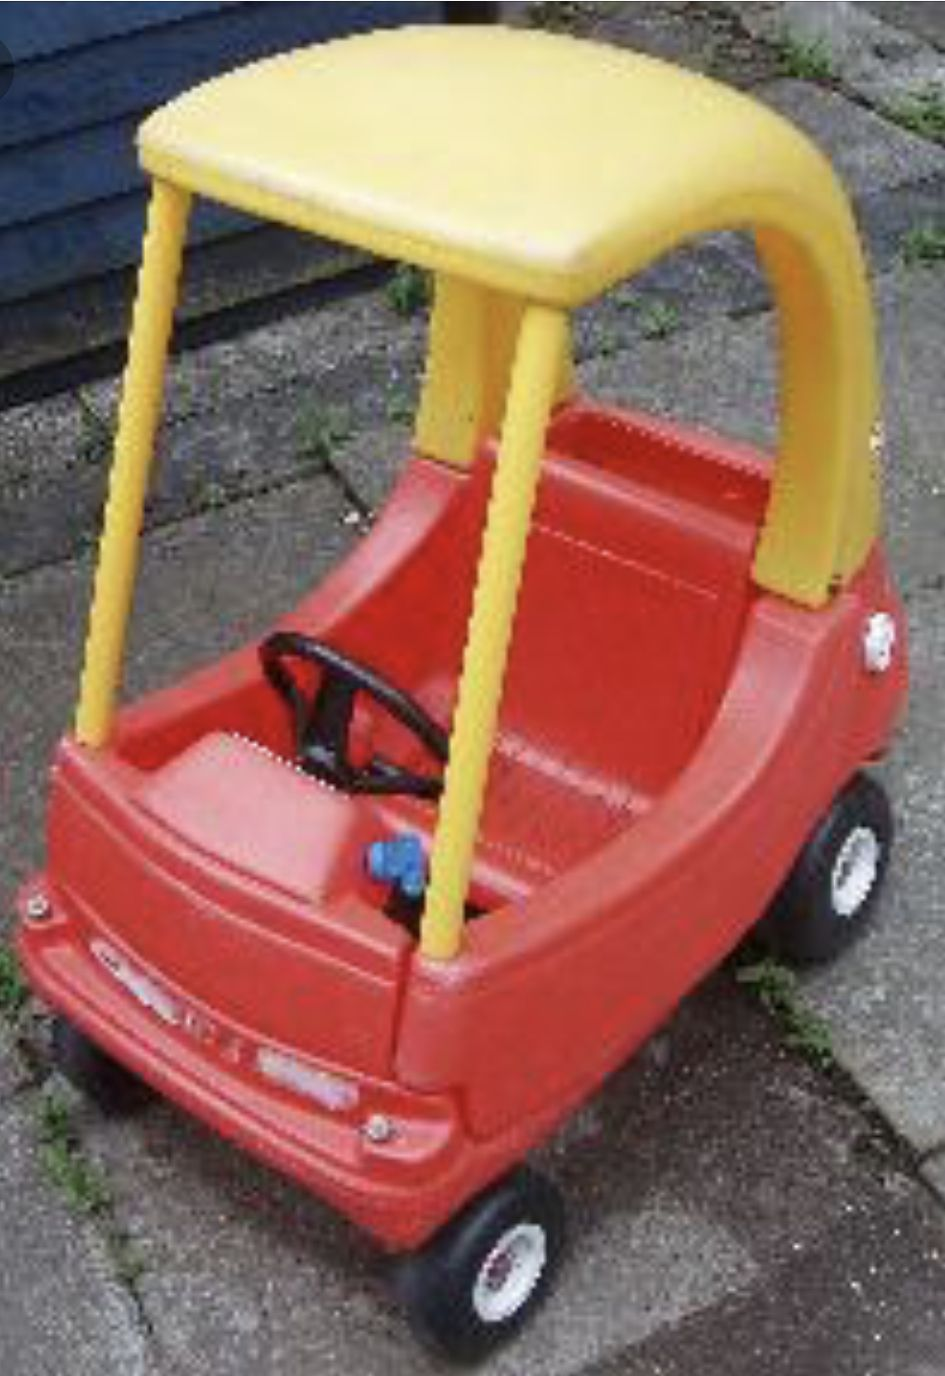 Little Tykes Coupe found at Goodwill Little tykes, Baby